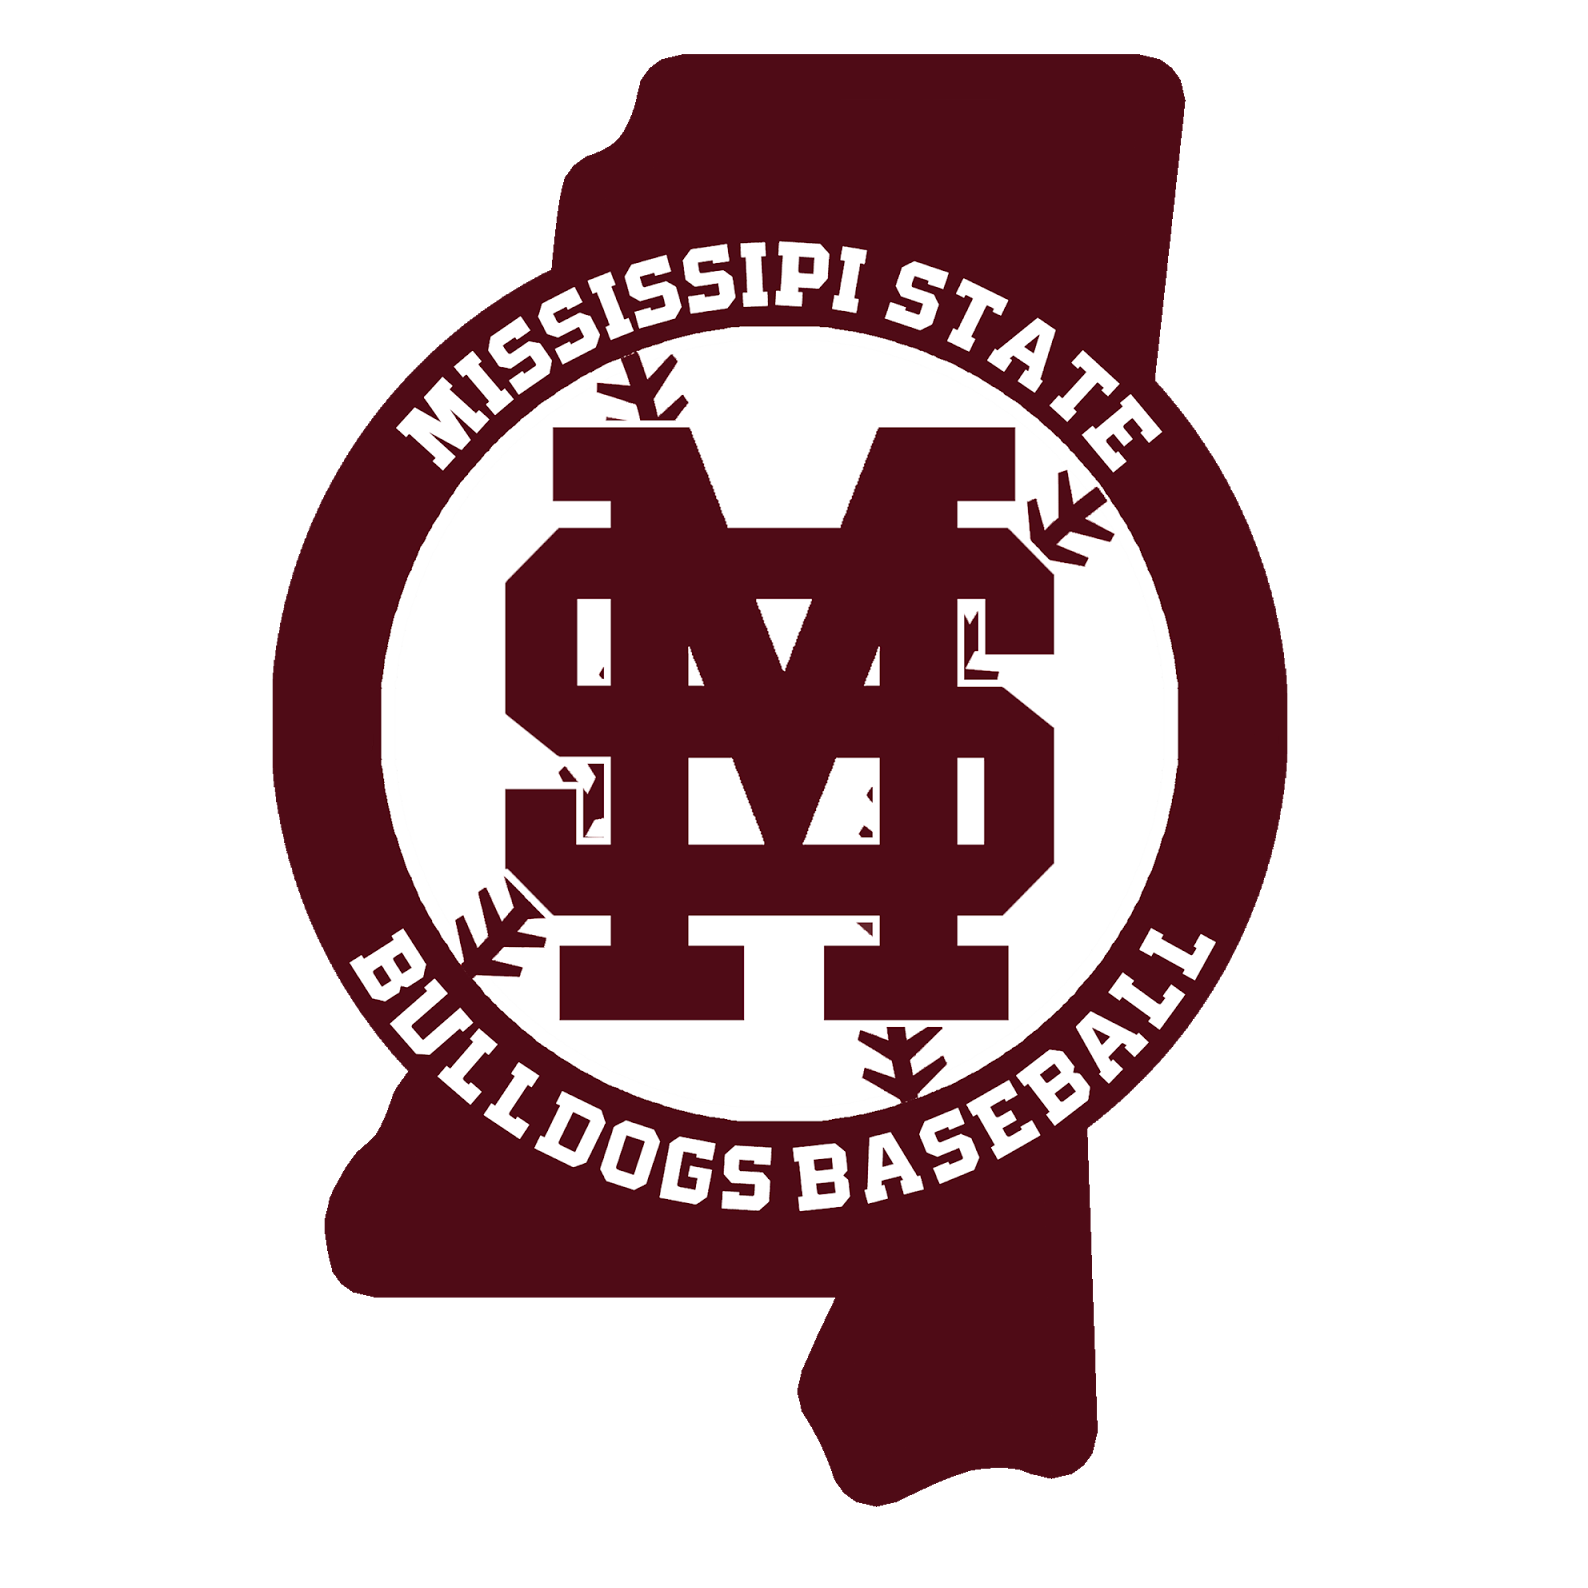 Mississippi State Baseball 2019 Home Games